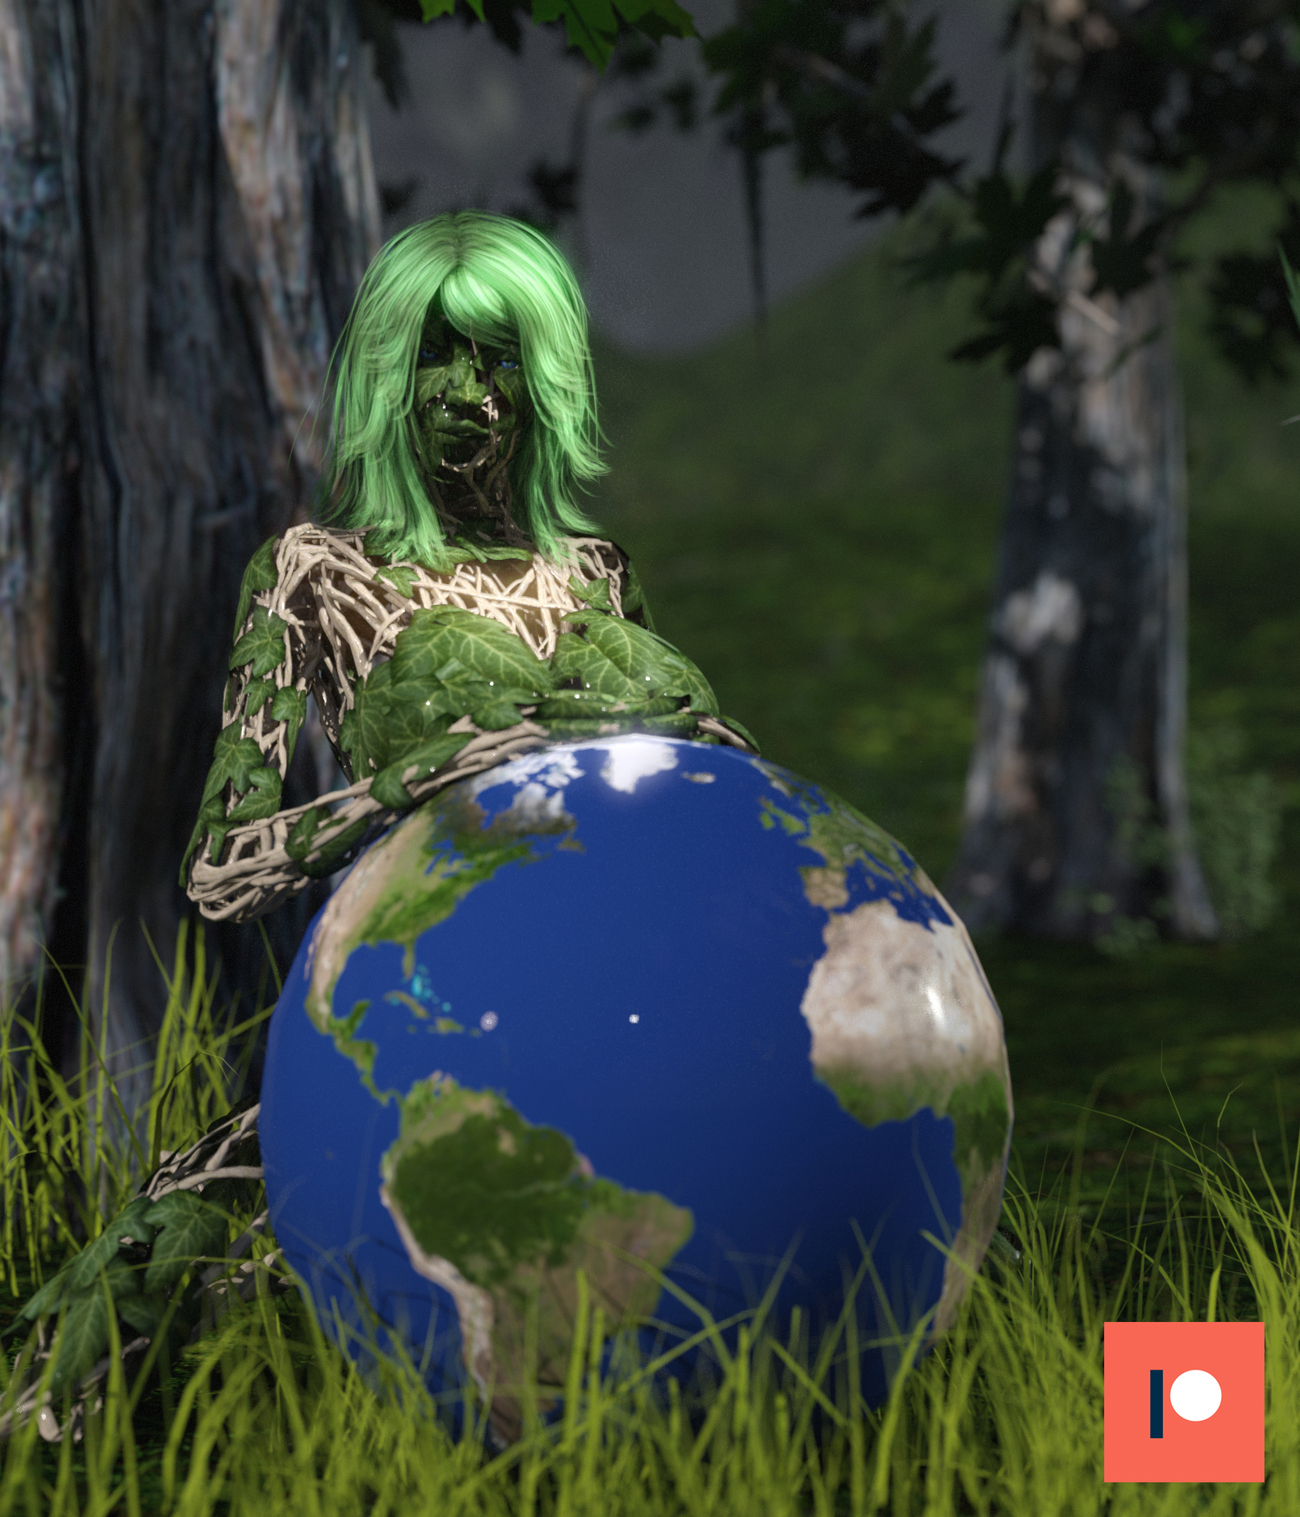 Earth Day 2021 by lstowe